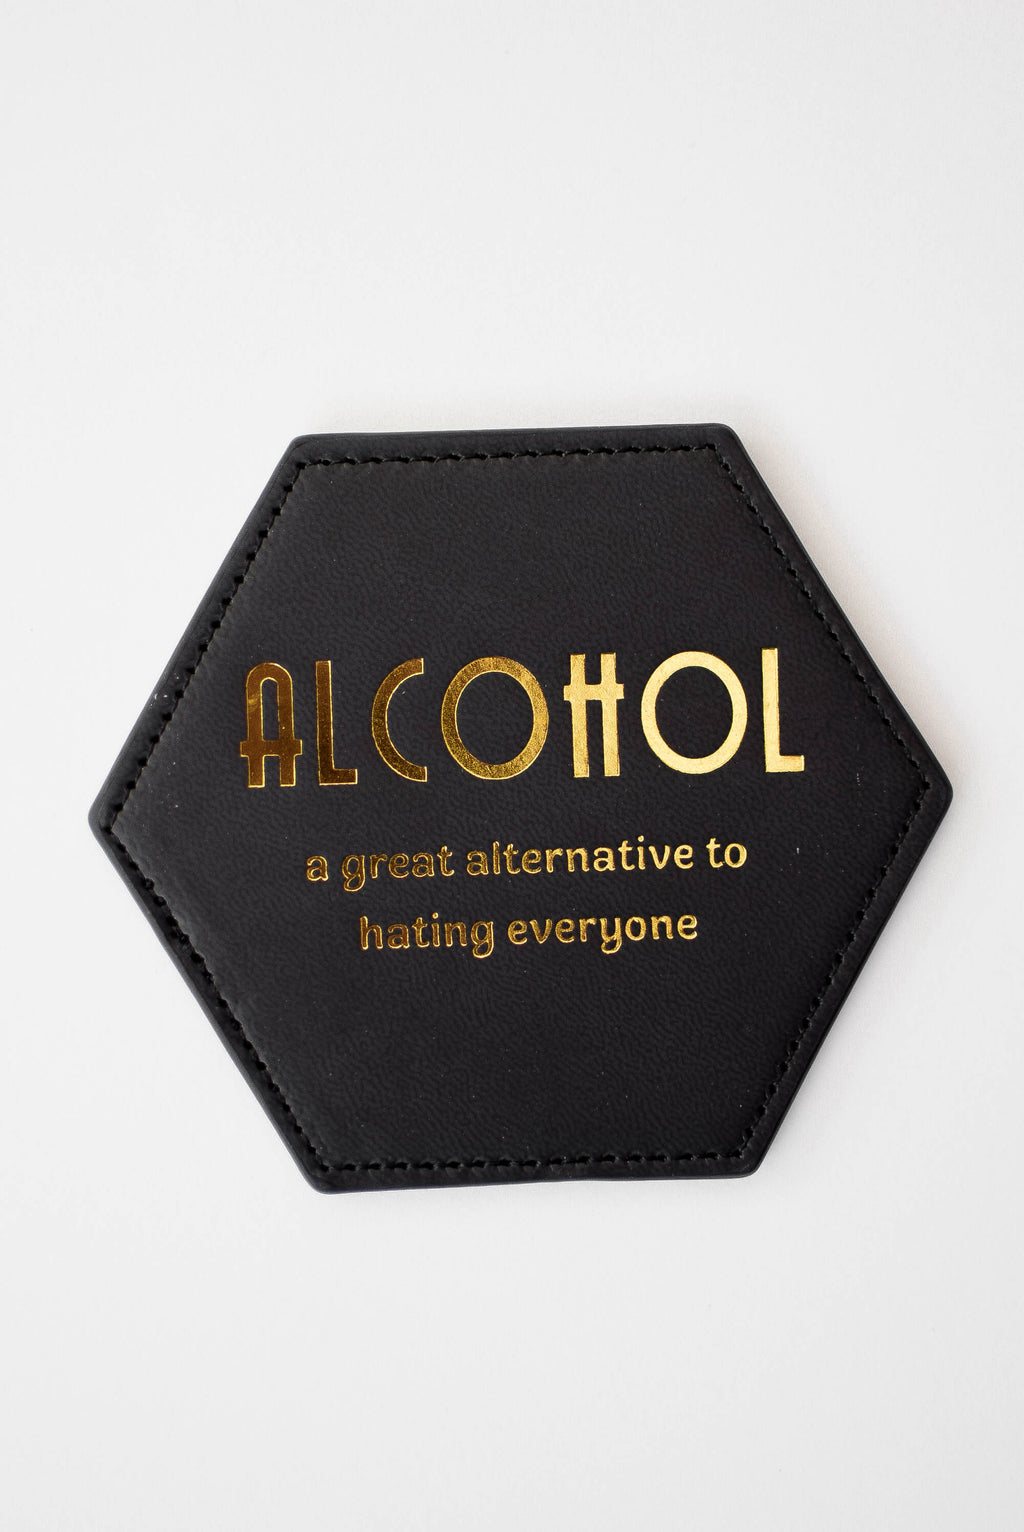 Alcohol Coasters - Mint Pop Shop